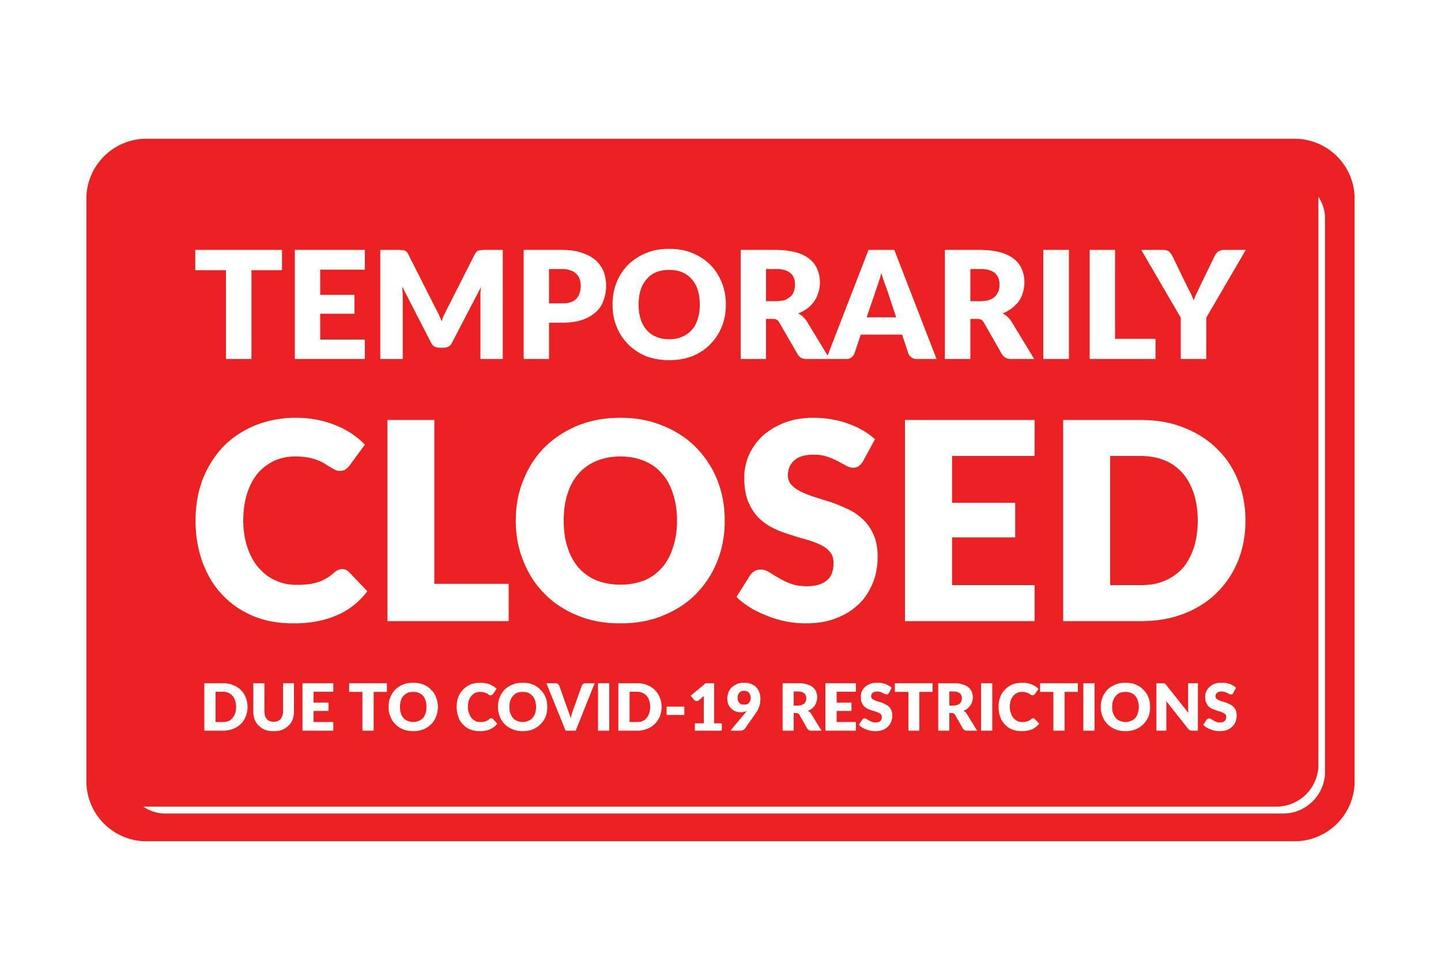 Temporarily closed due to covid 19 restriction vector